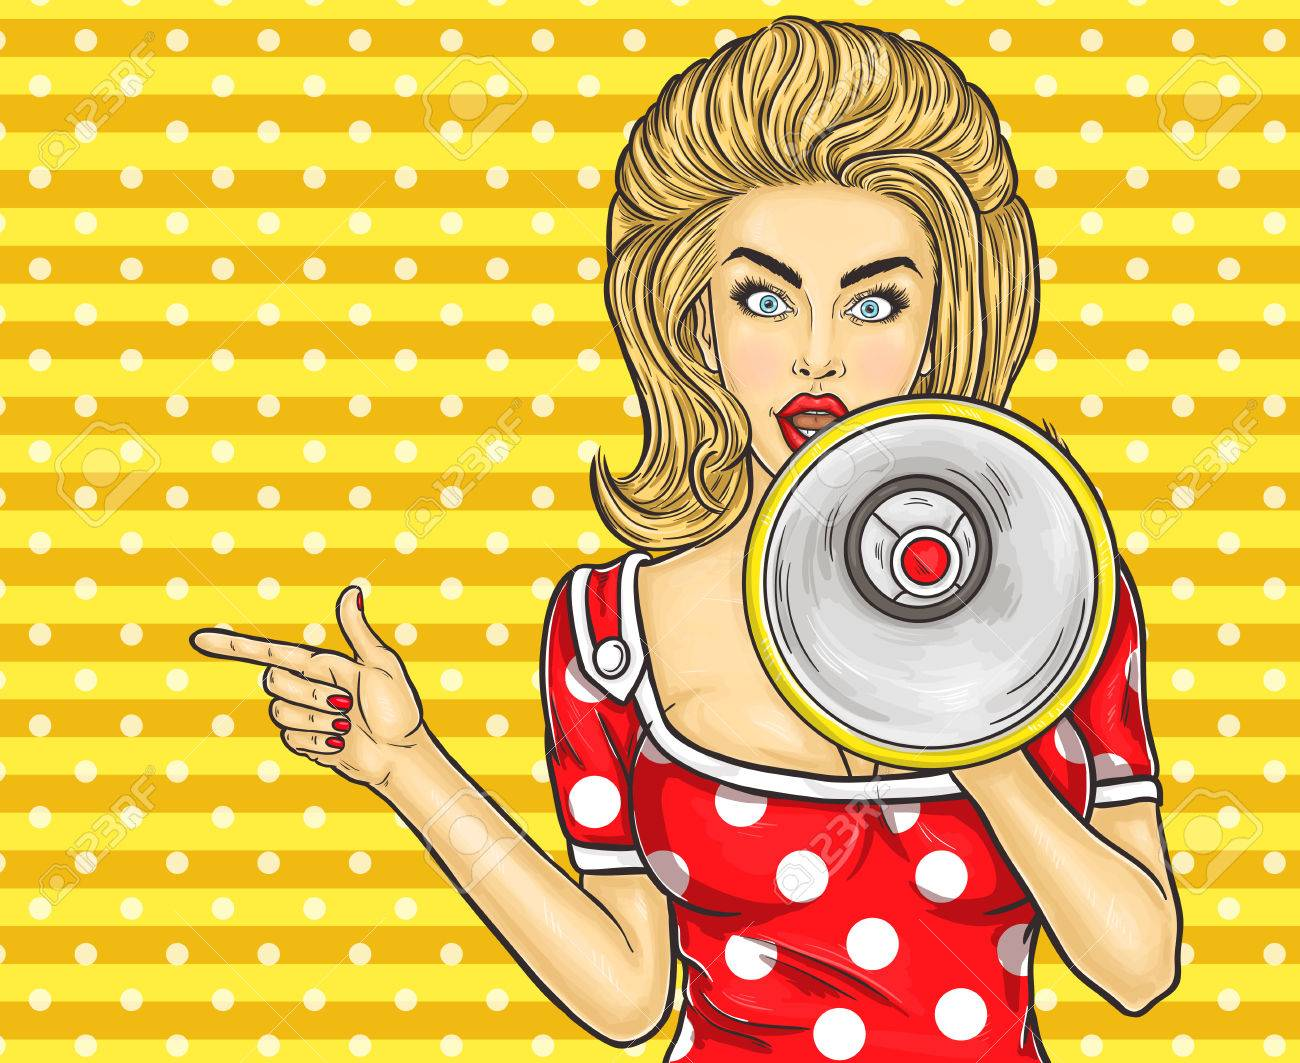 Vector illustration pop art girl with megaphone announce discounts and sales - 68647907